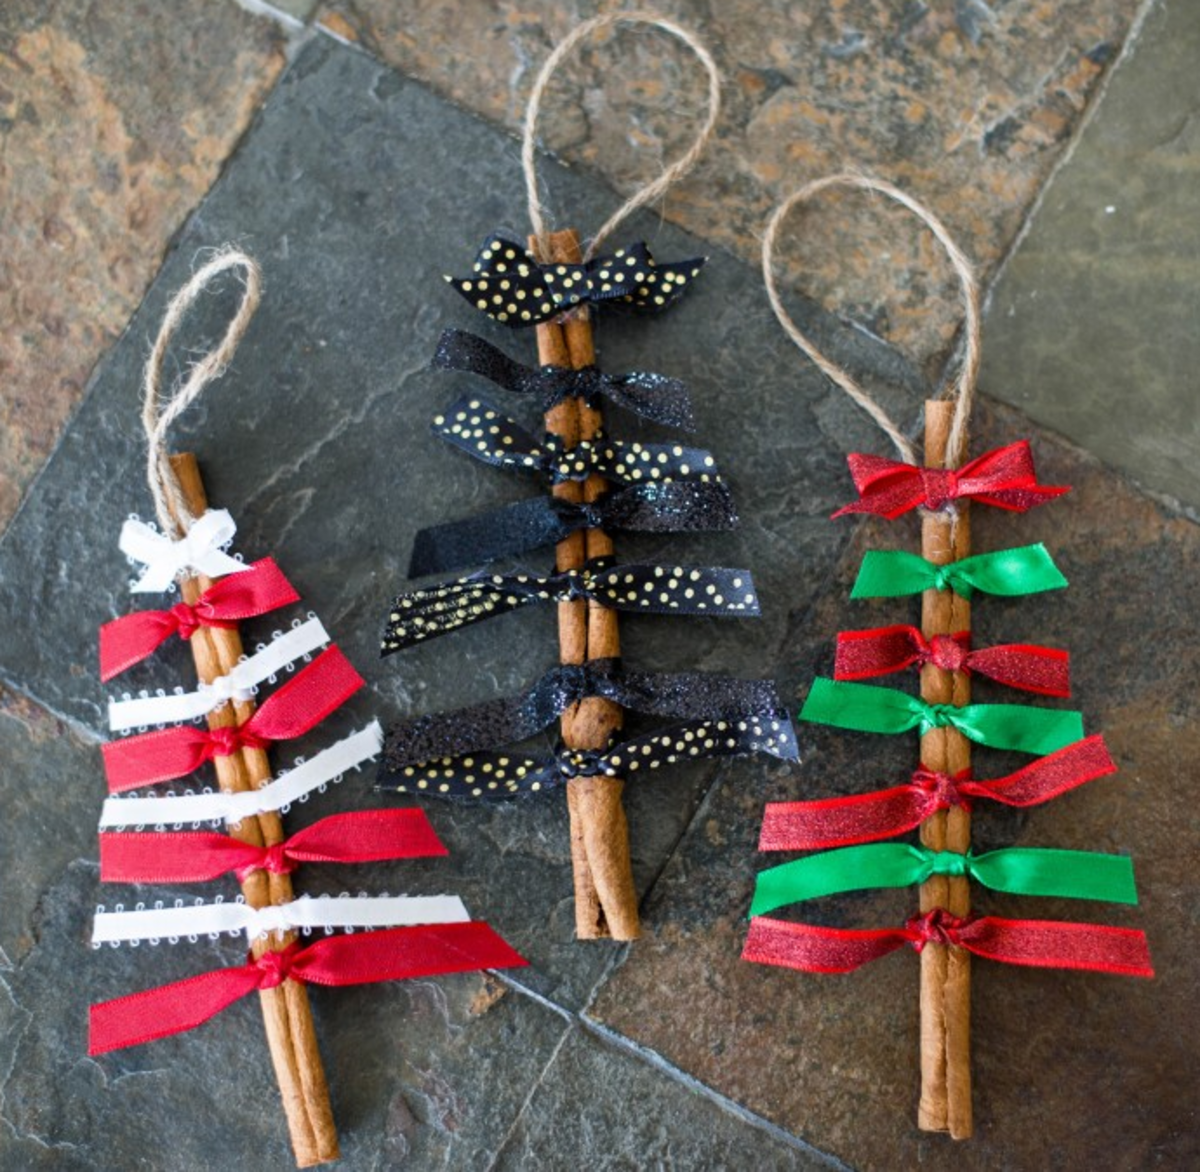 Easy To Make Christmas Decorations.25 Easy To Make Rustic Christmas Ornaments Holidappy Celebrations